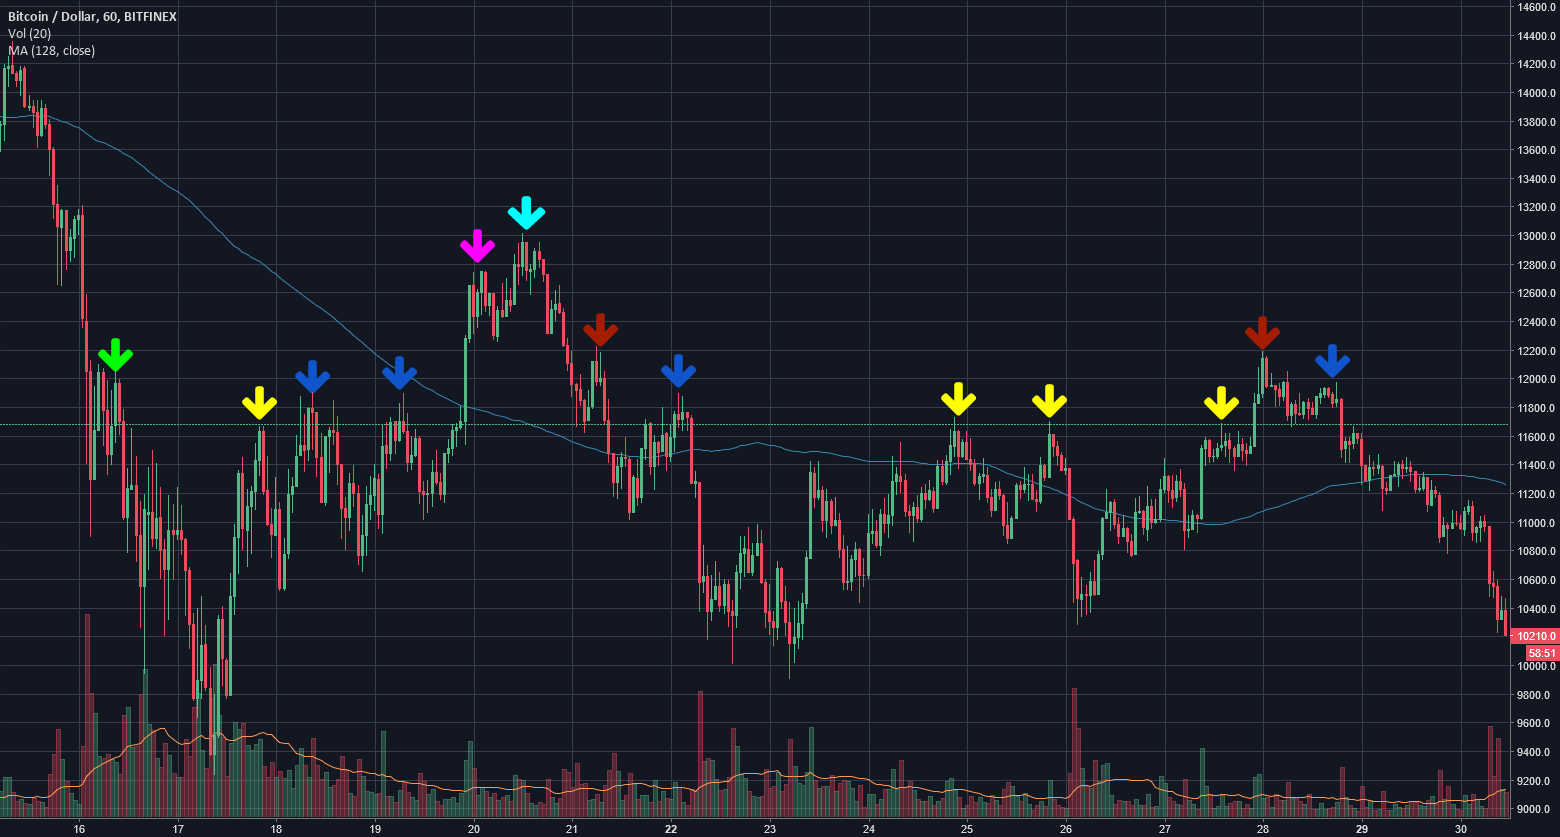 Bitcoin Resistance Levels from 11,600 to 13,000